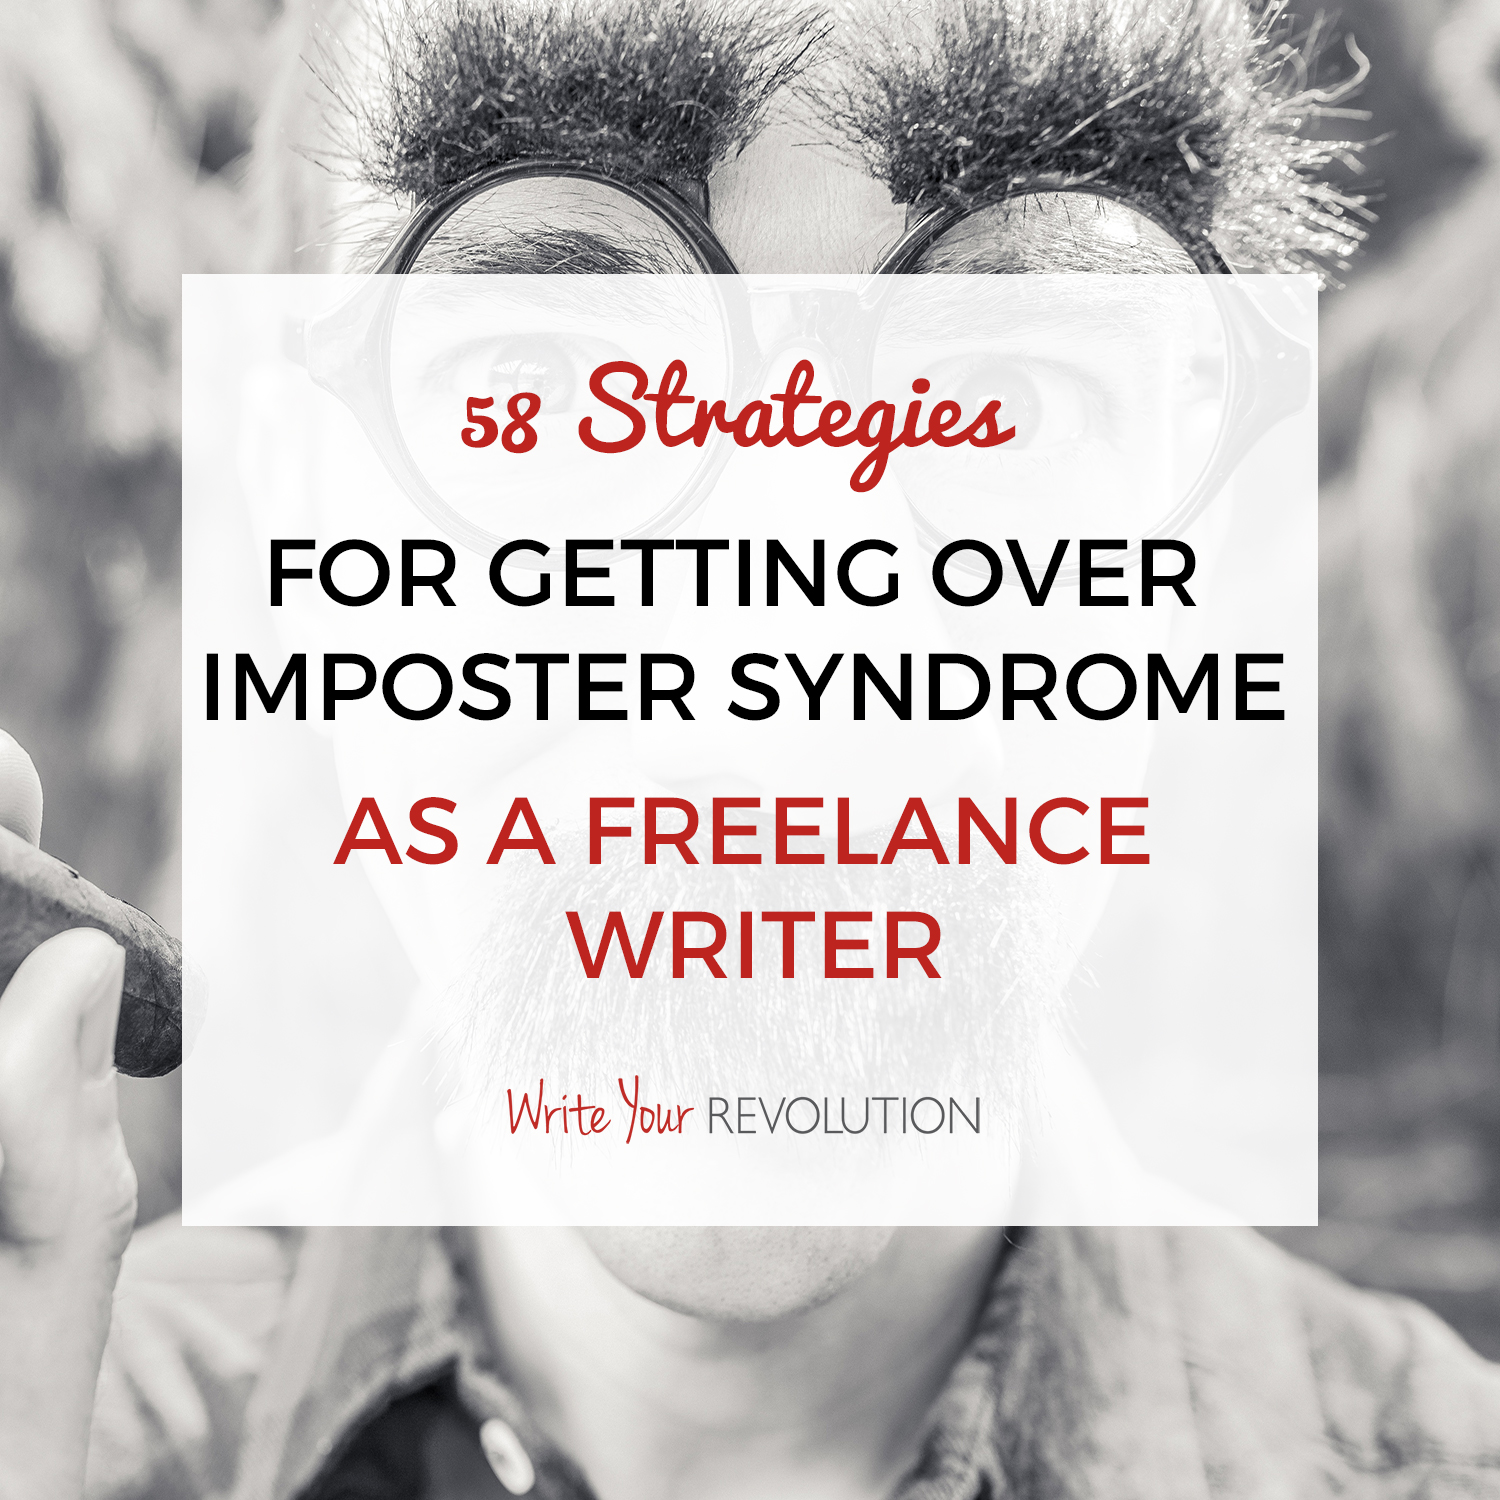 58 Strategies for Getting Over Imposter Syndrome as a Freelance Writer